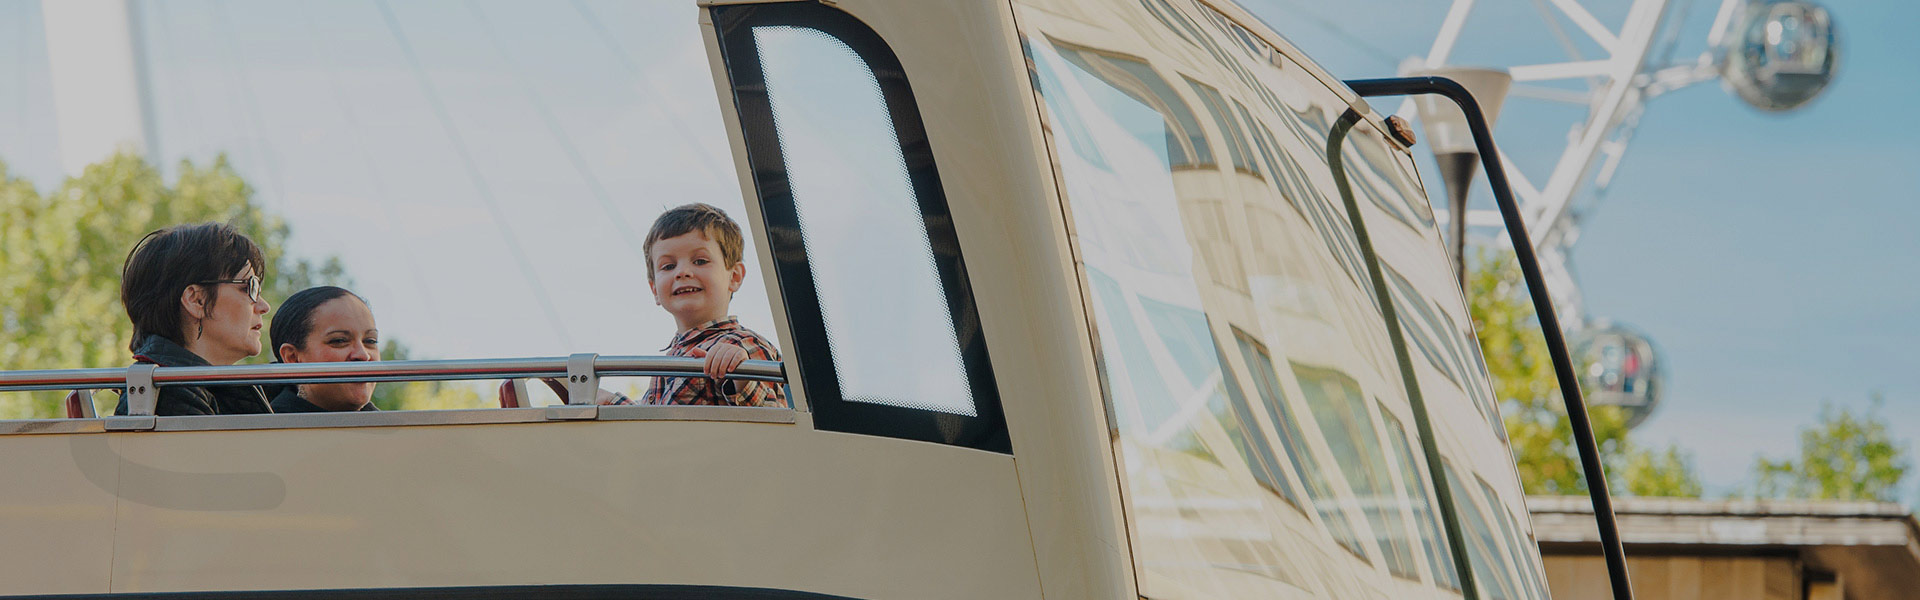 Child on Big Bus tour in London